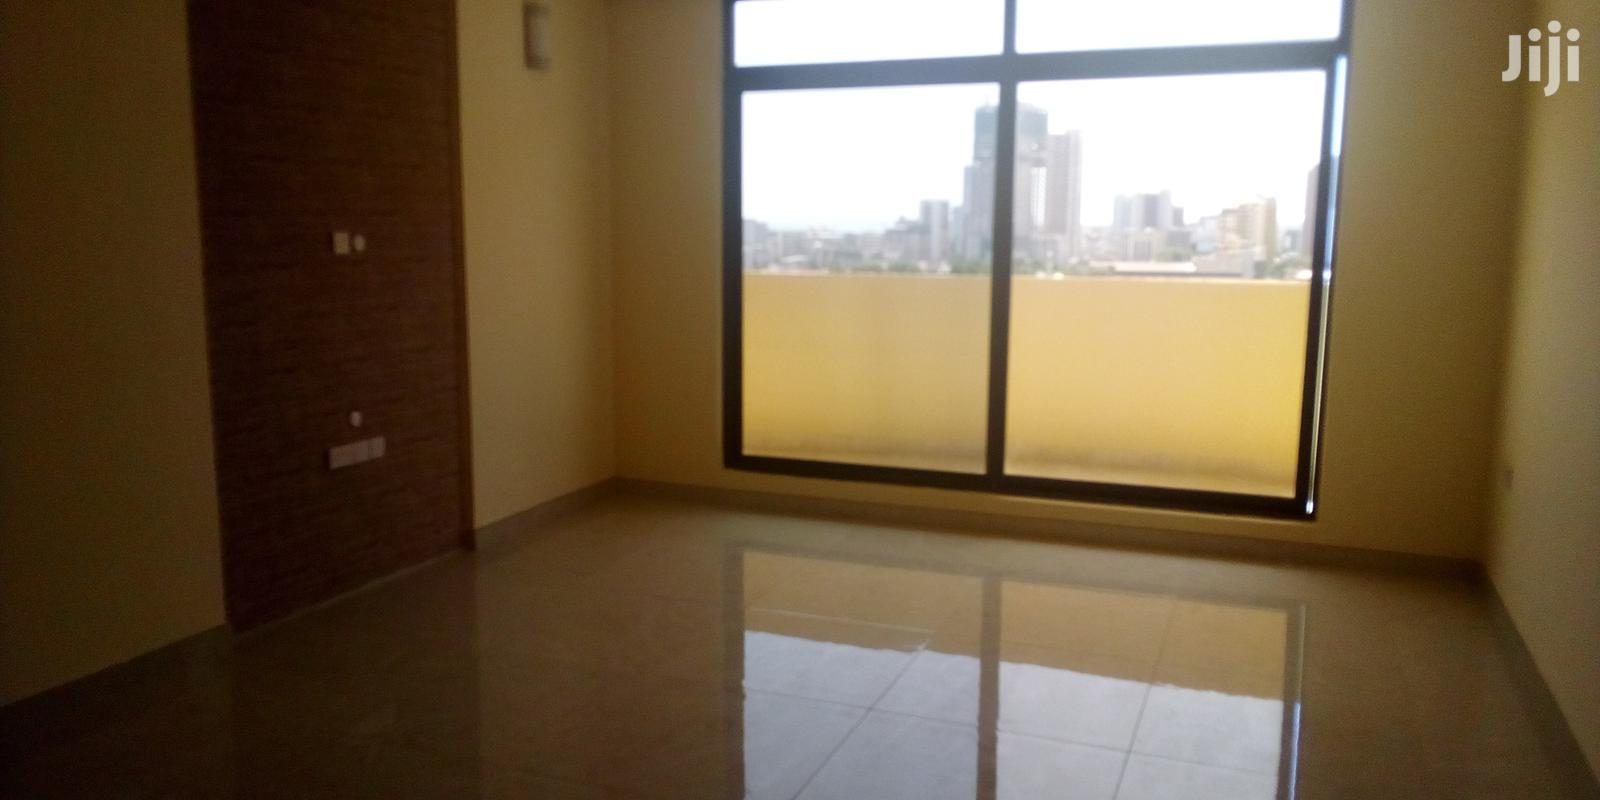 Luxury 3 Bedroom Apartment For Rent In Upanga | Houses & Apartments For Rent for sale in Ilala, Dar es Salaam, Tanzania